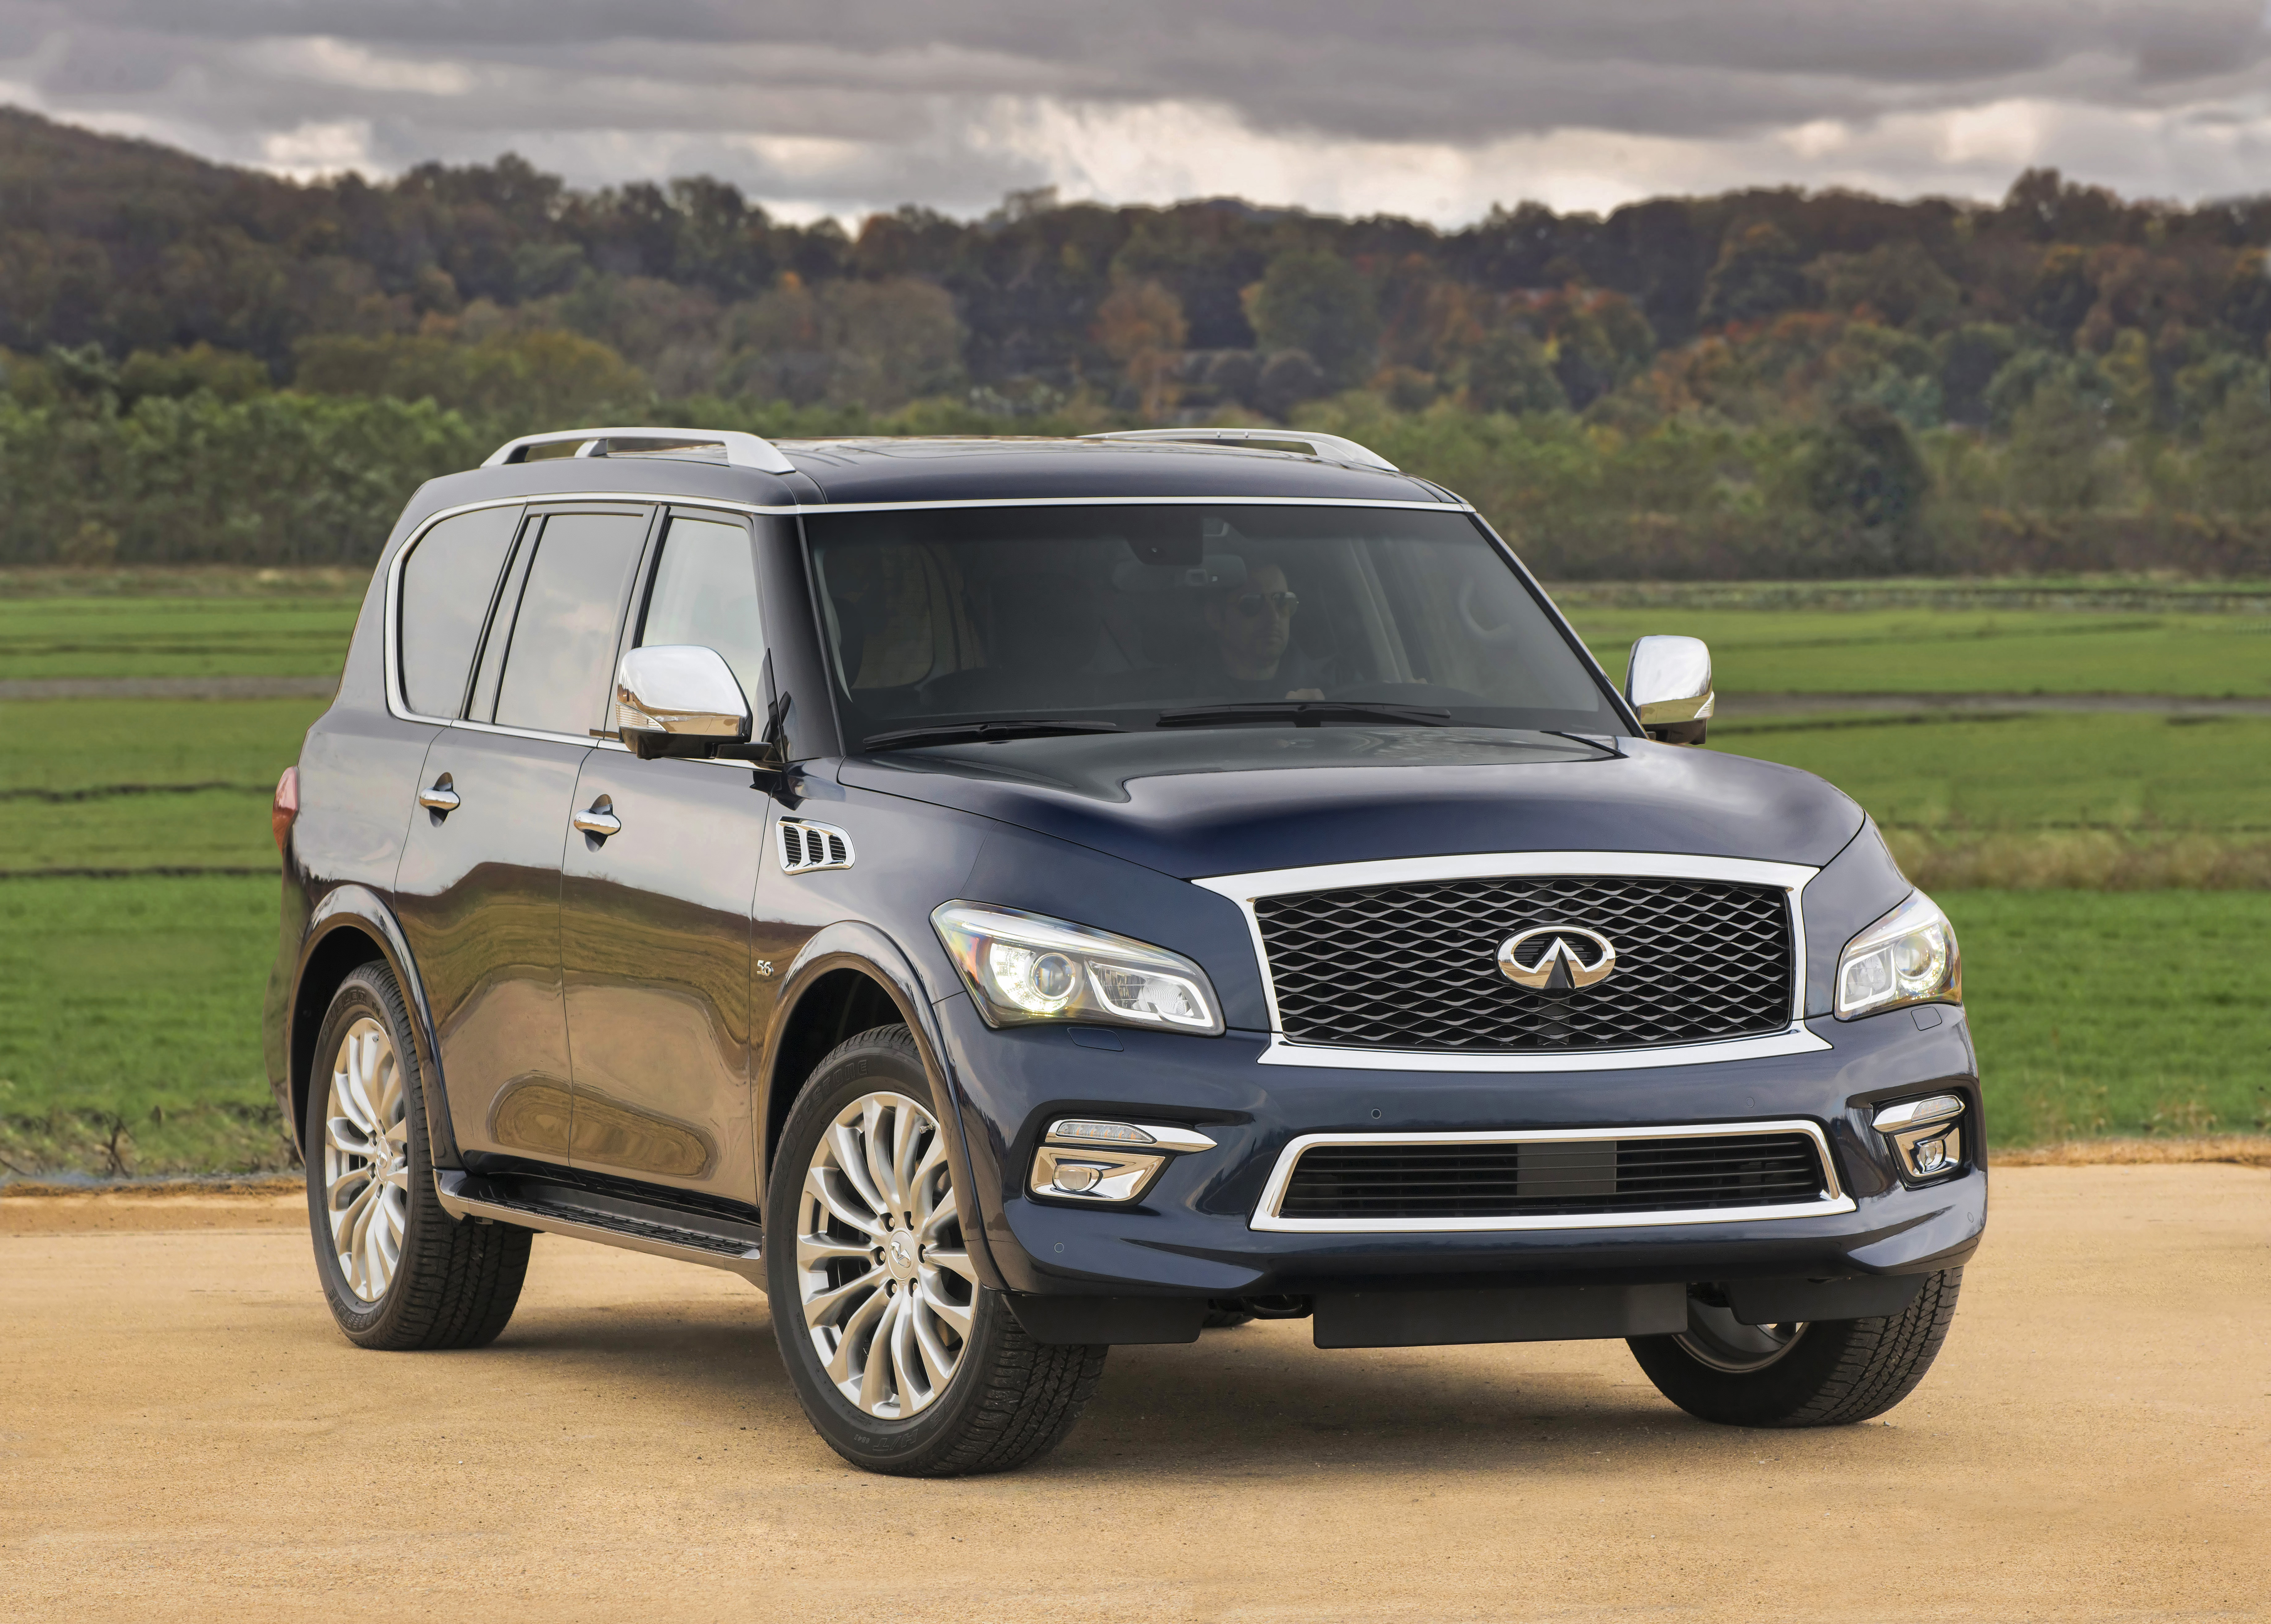 infiniti qx80 rated most appealing large premium suv in 2015 jd power u s apeal study. Black Bedroom Furniture Sets. Home Design Ideas